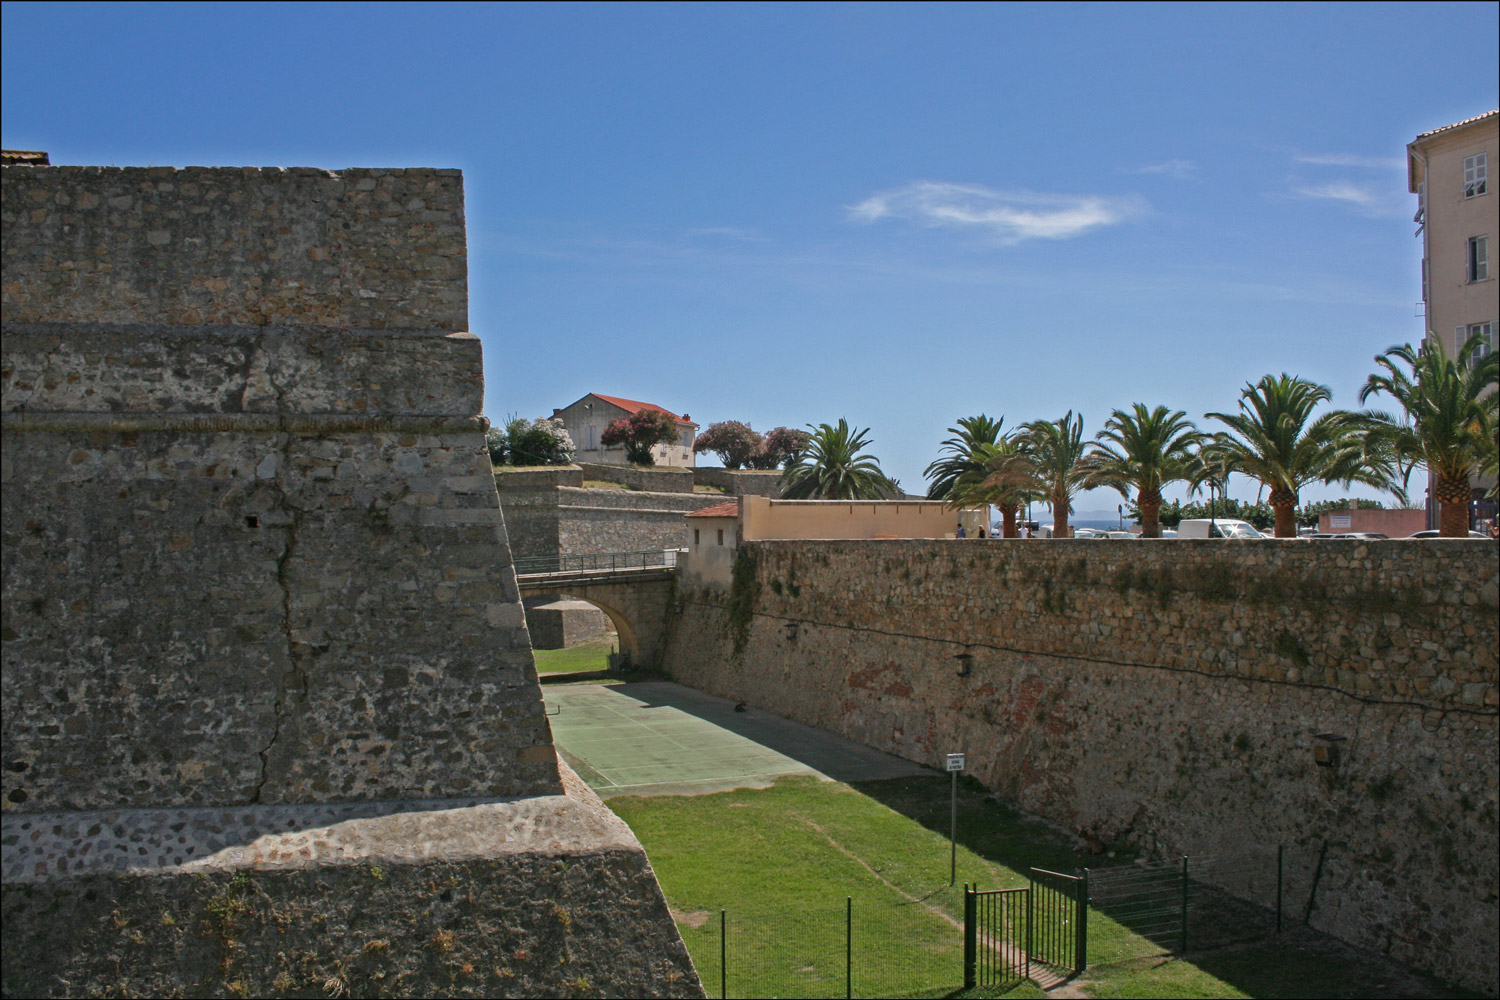 The Citadel in Ajaccio